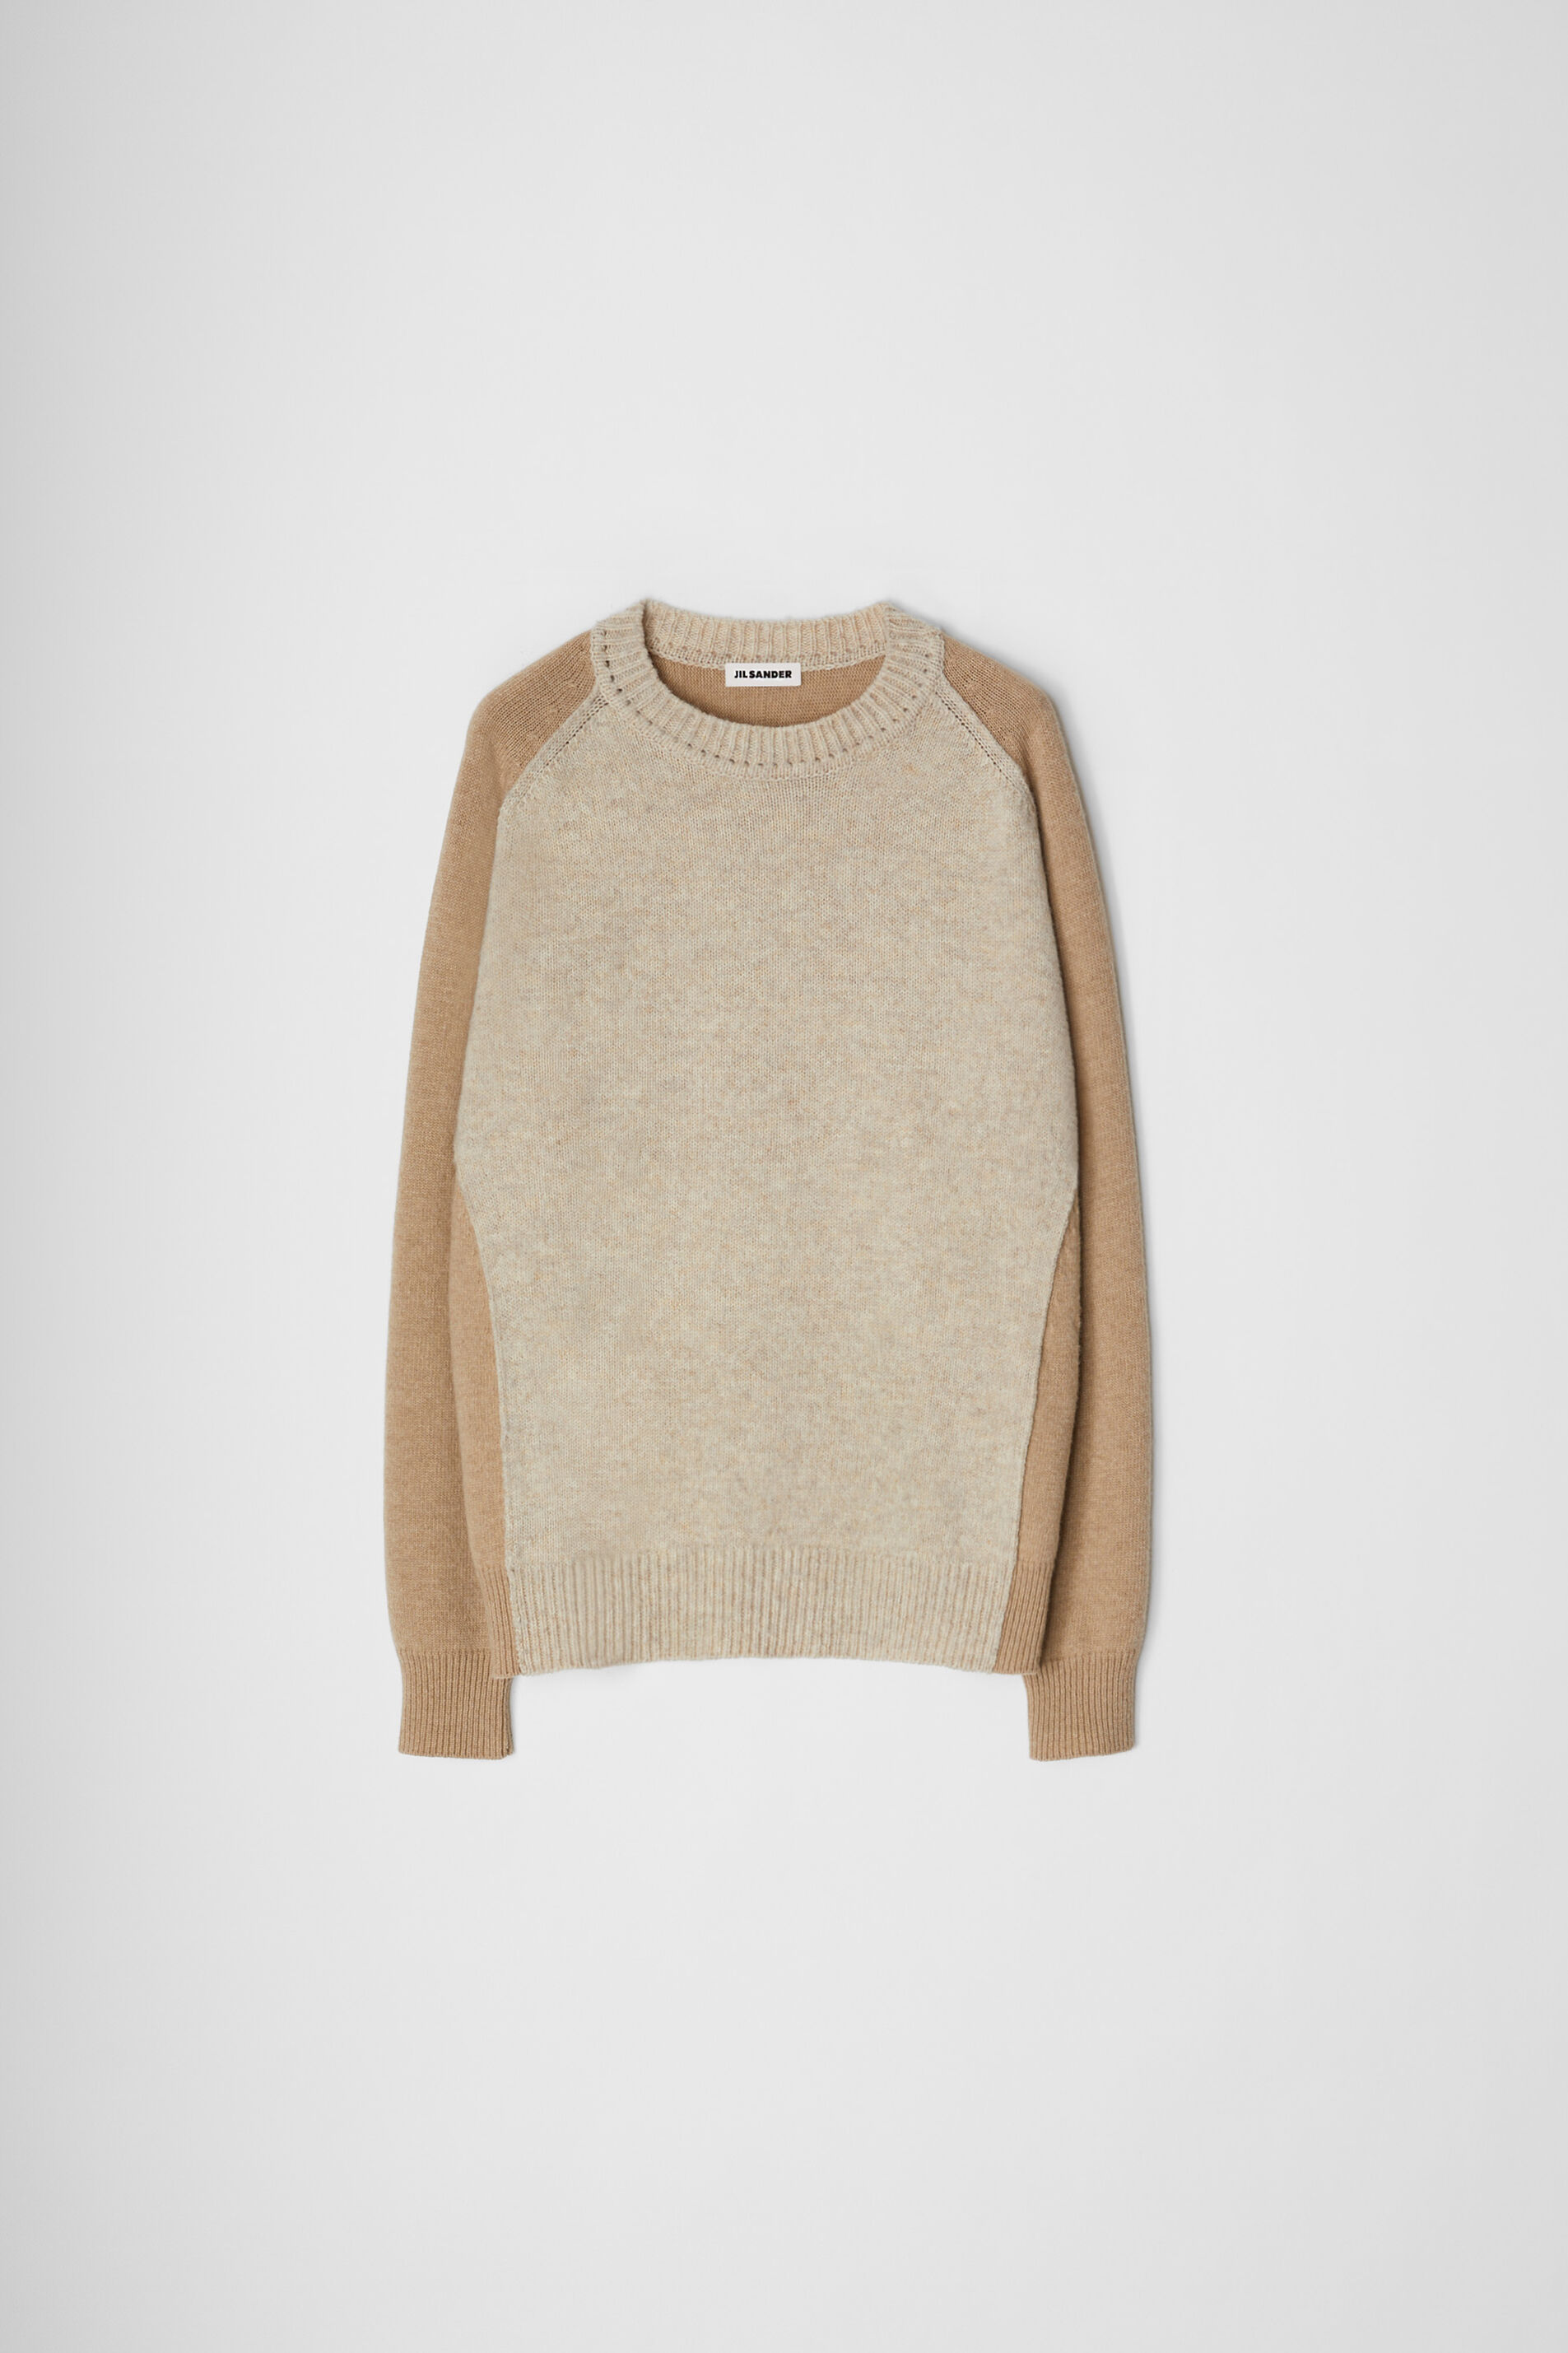 Sweater, beige, large